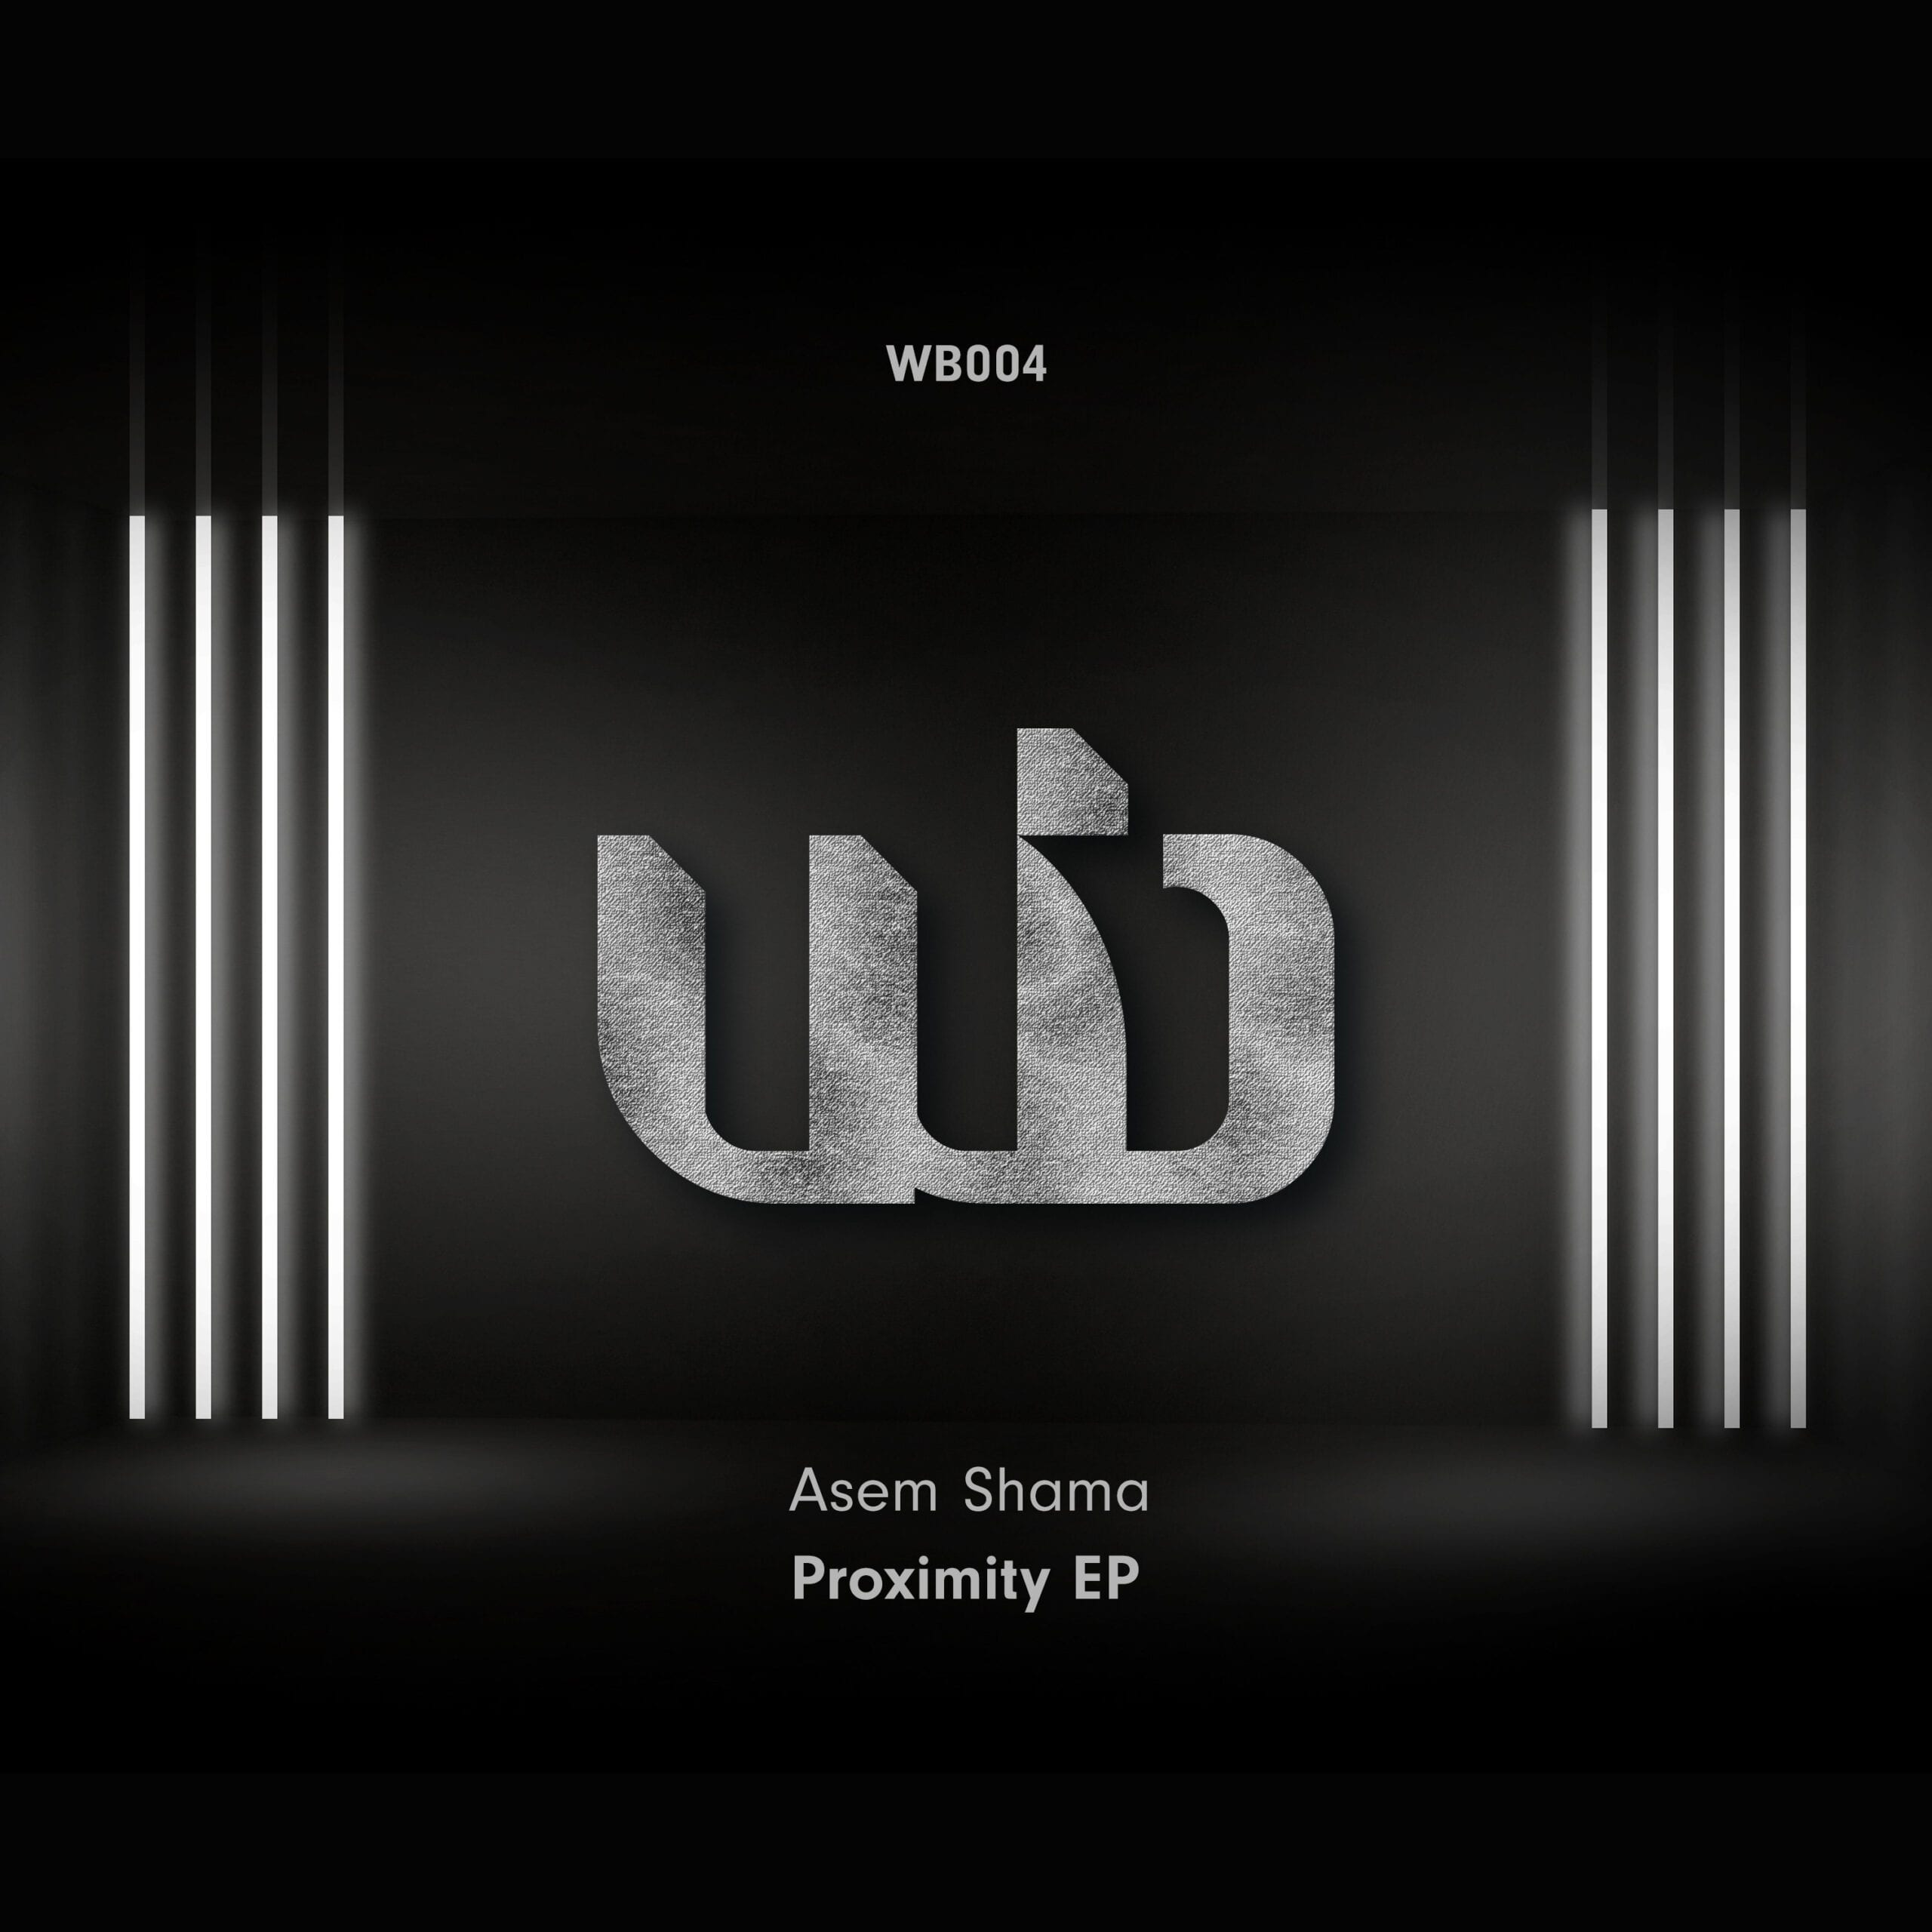 Whipbass is back with an amazing jam by Asem Shama